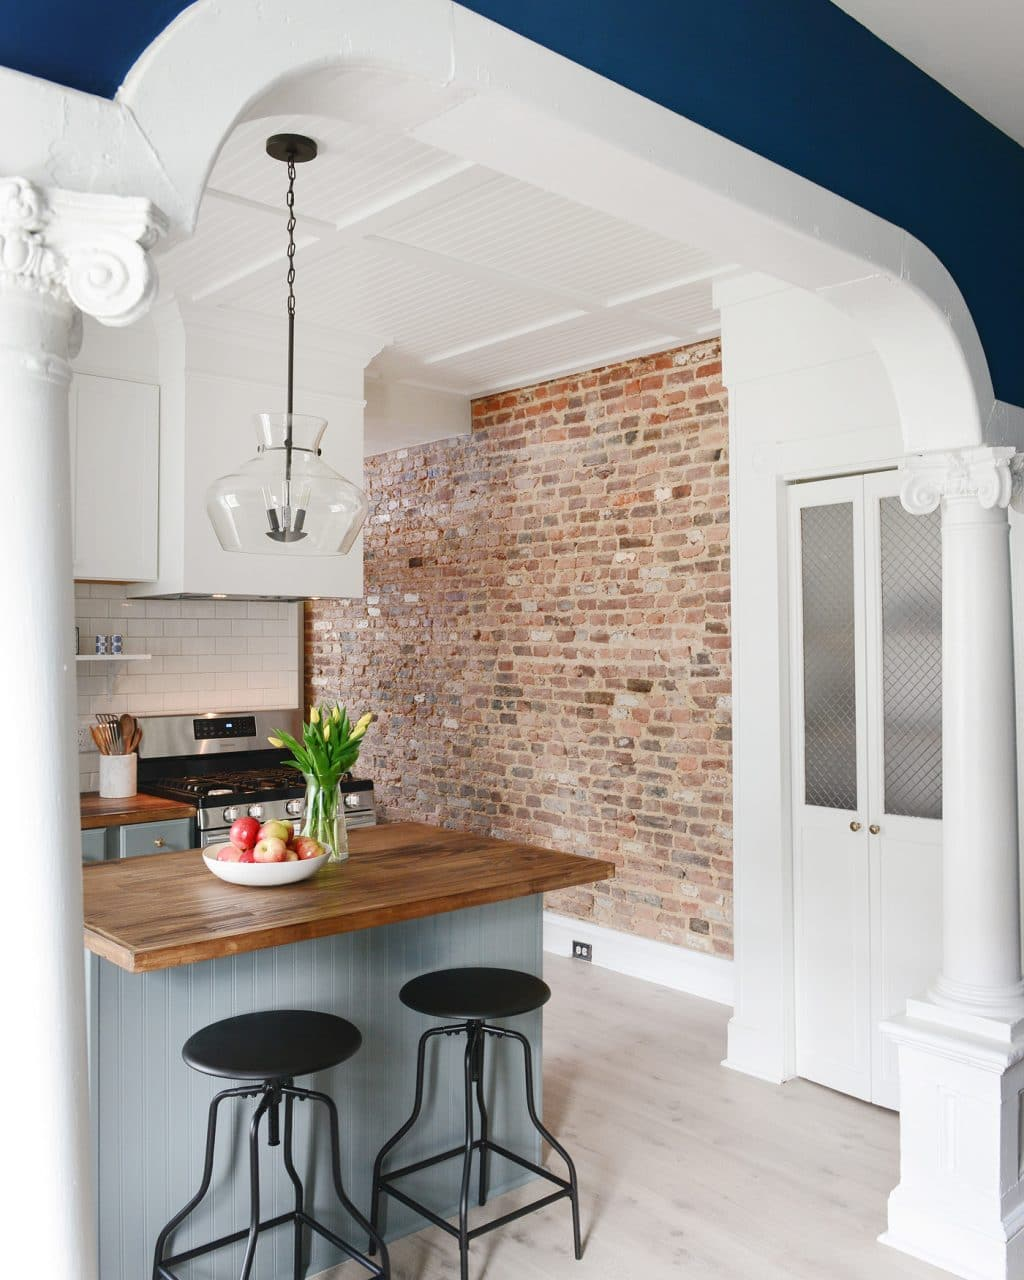 on lowe s kitchen ideas product.html